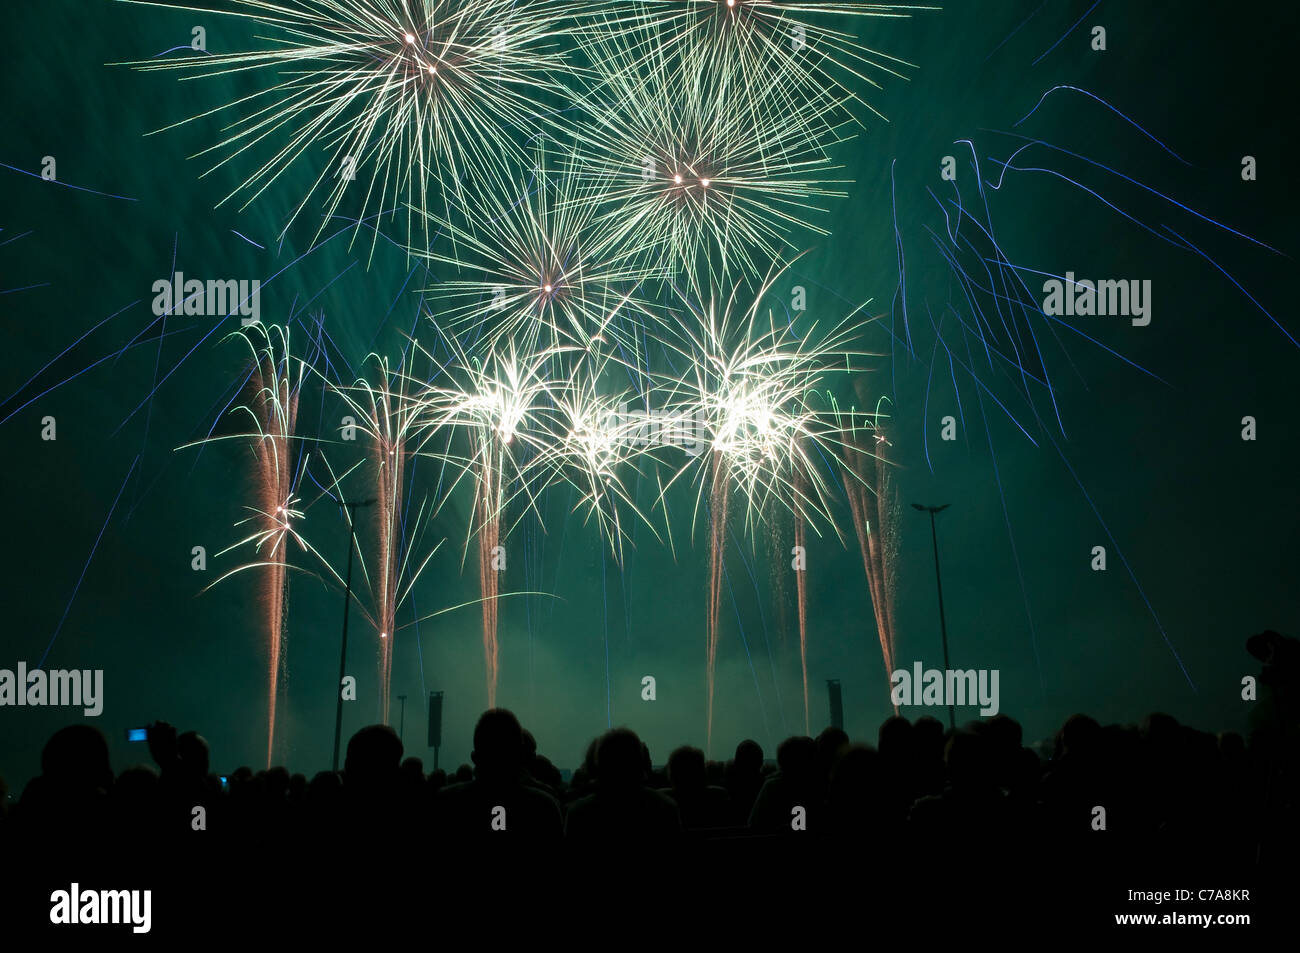 Fireworks synchronized to music, preliminary decision to the fireworks world championship Pyronale, Erfurt, Germany - Stock Image